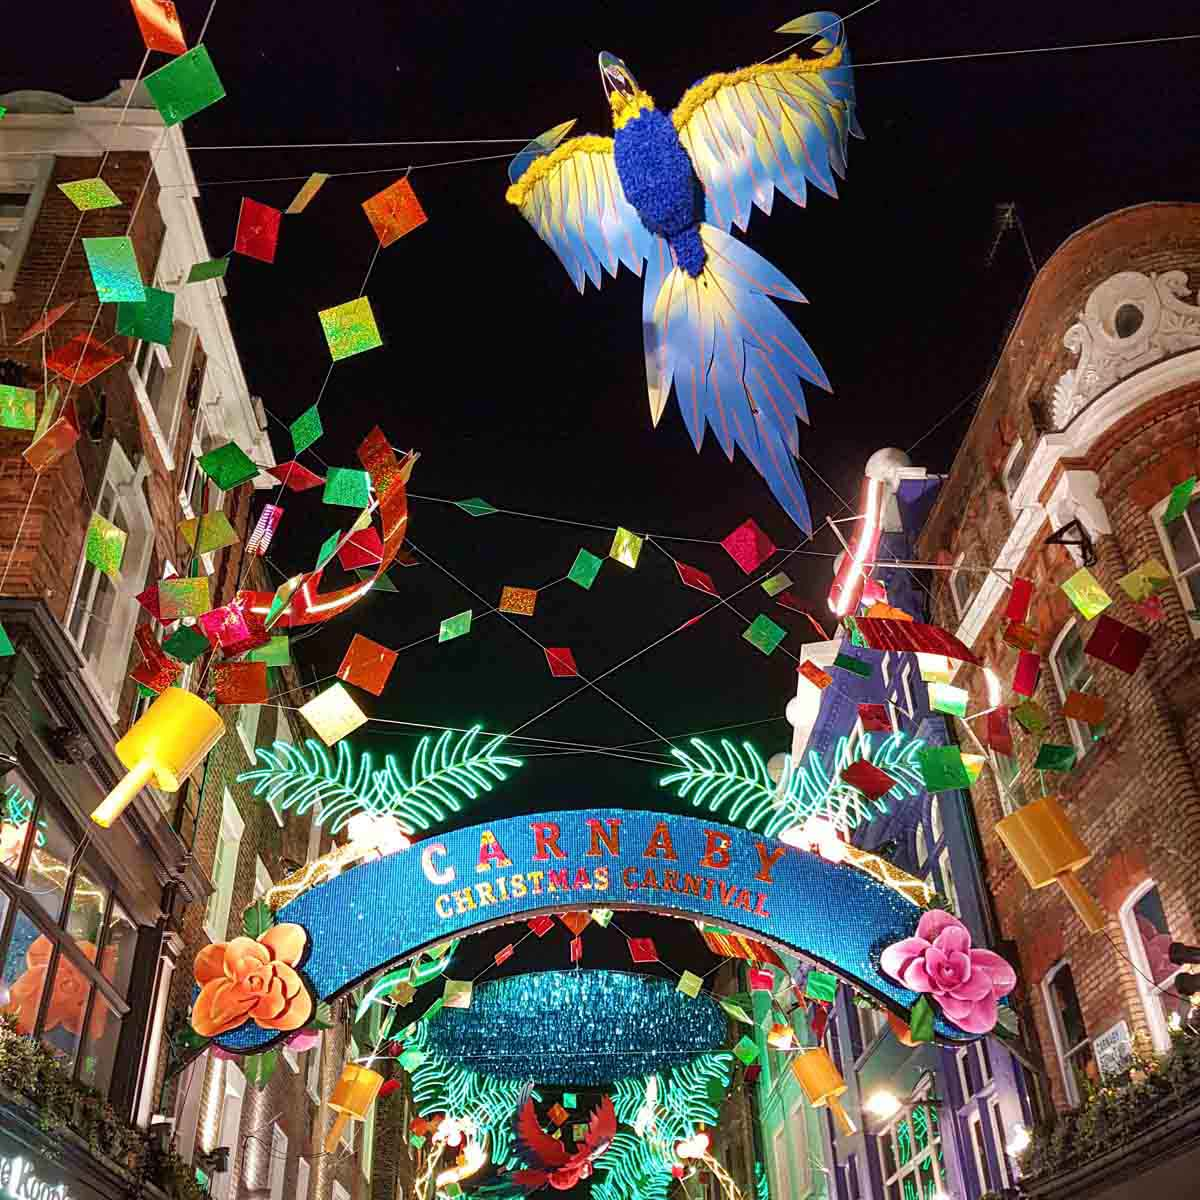 Carnaby Street, kerst in Londen - Map of Joy